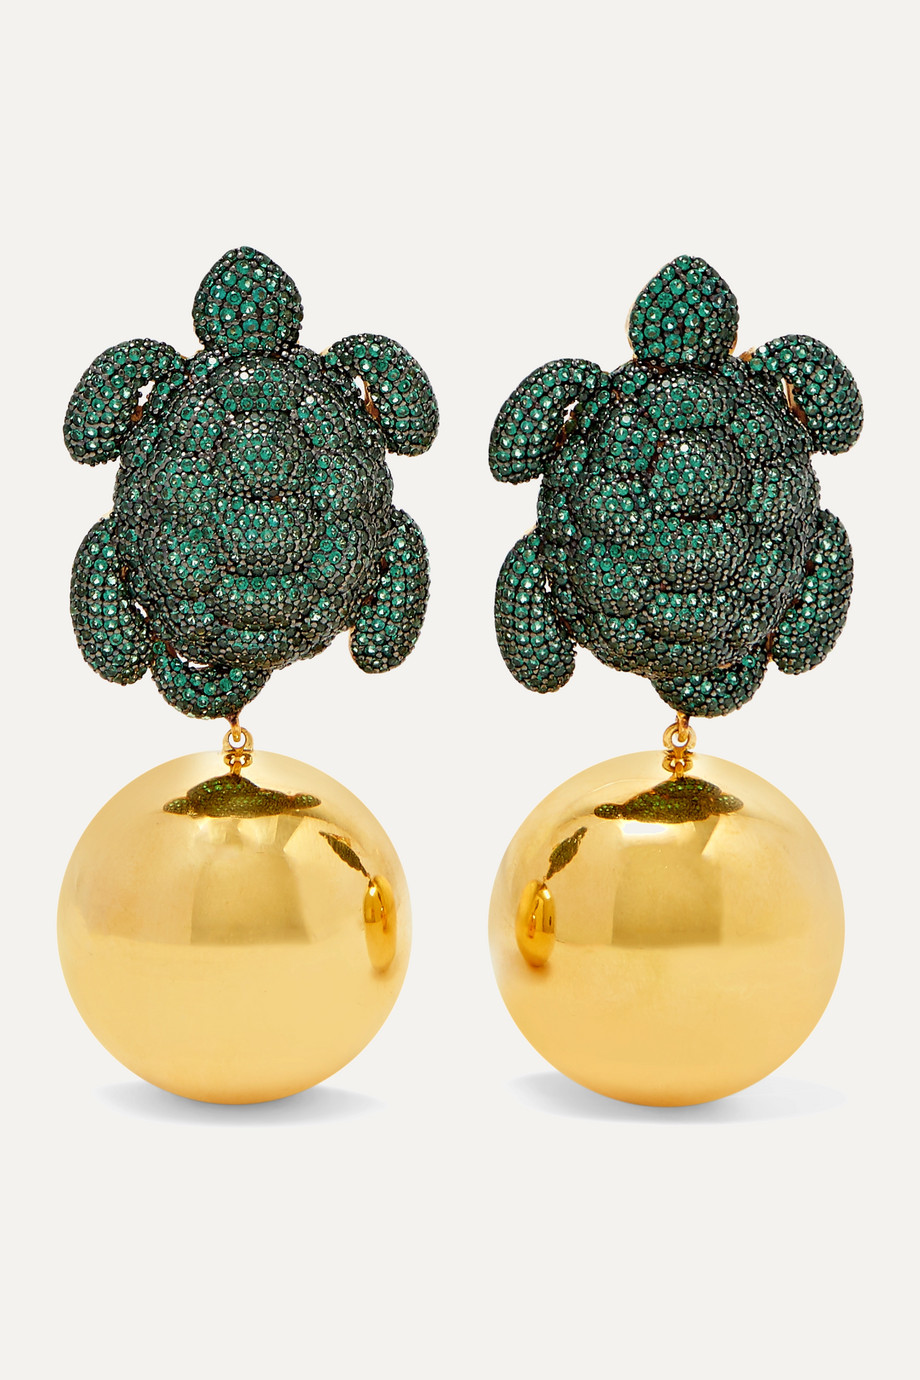 Begüm Khan Caretta gold-plated cubic zirconia clip earrings